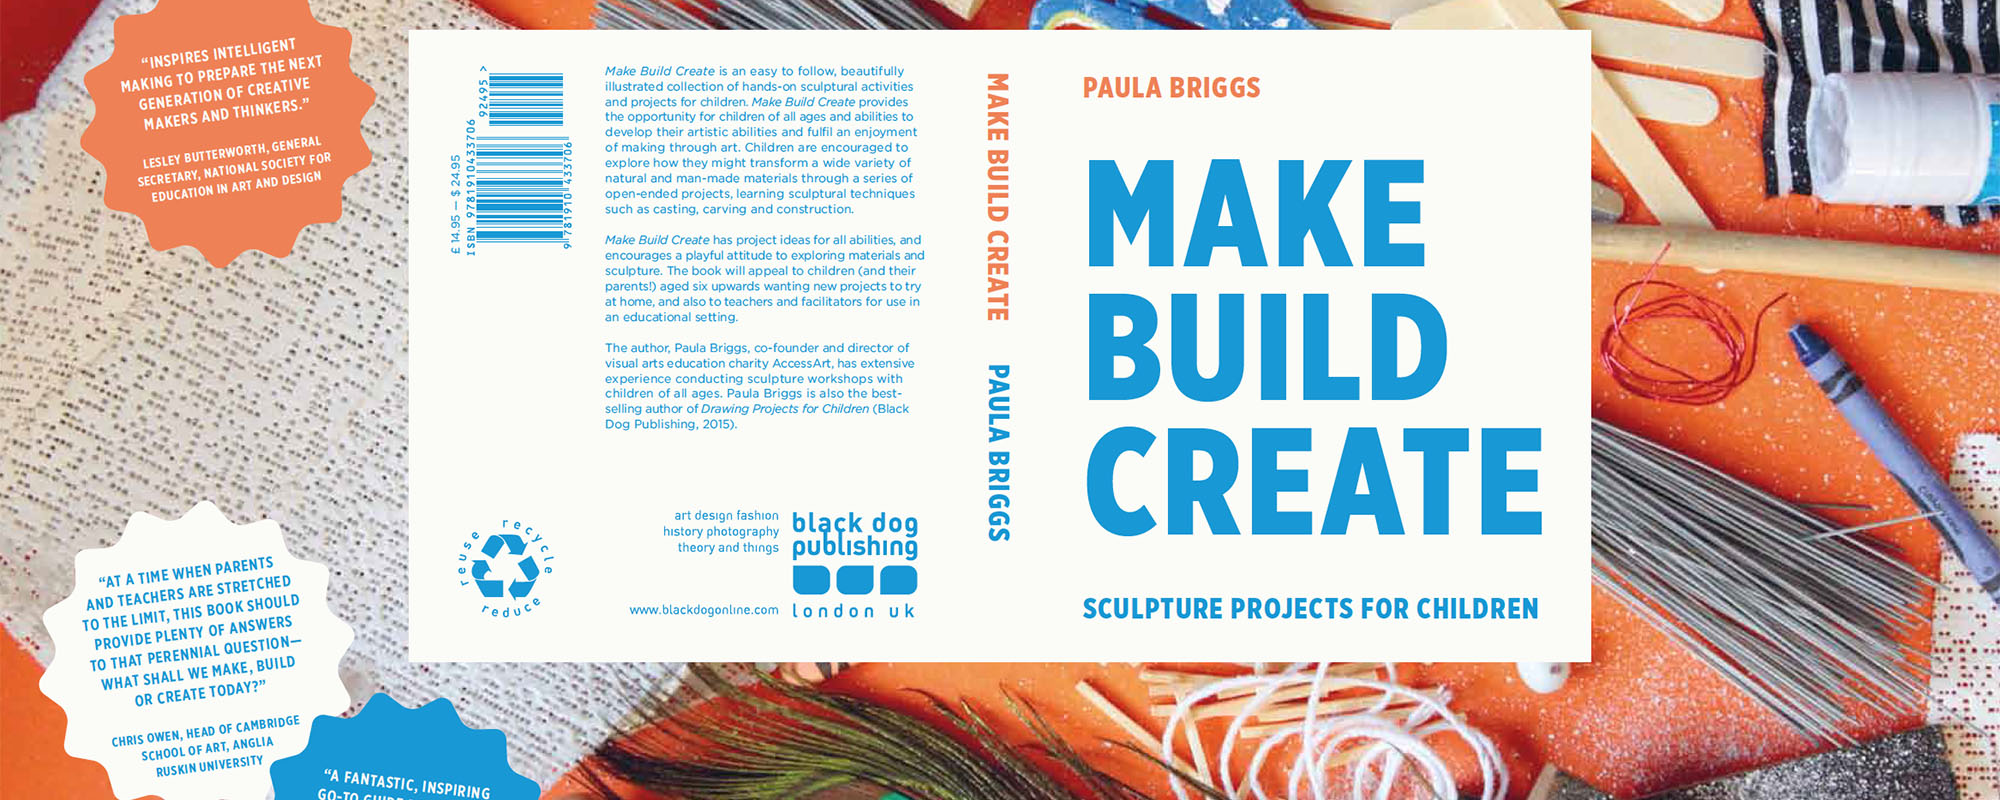 "Making is a vital skill. This book shares lots of ideas for making projects which encourage creativity, dexterity and curiosity. [themify_button style=""xlarge block"" link=""https://www.accessart.org.uk/make-build-create-sculpture-projects-for-children/"" color=""#78608e"" text=""#ffffff""]Read More[/themify_button]"